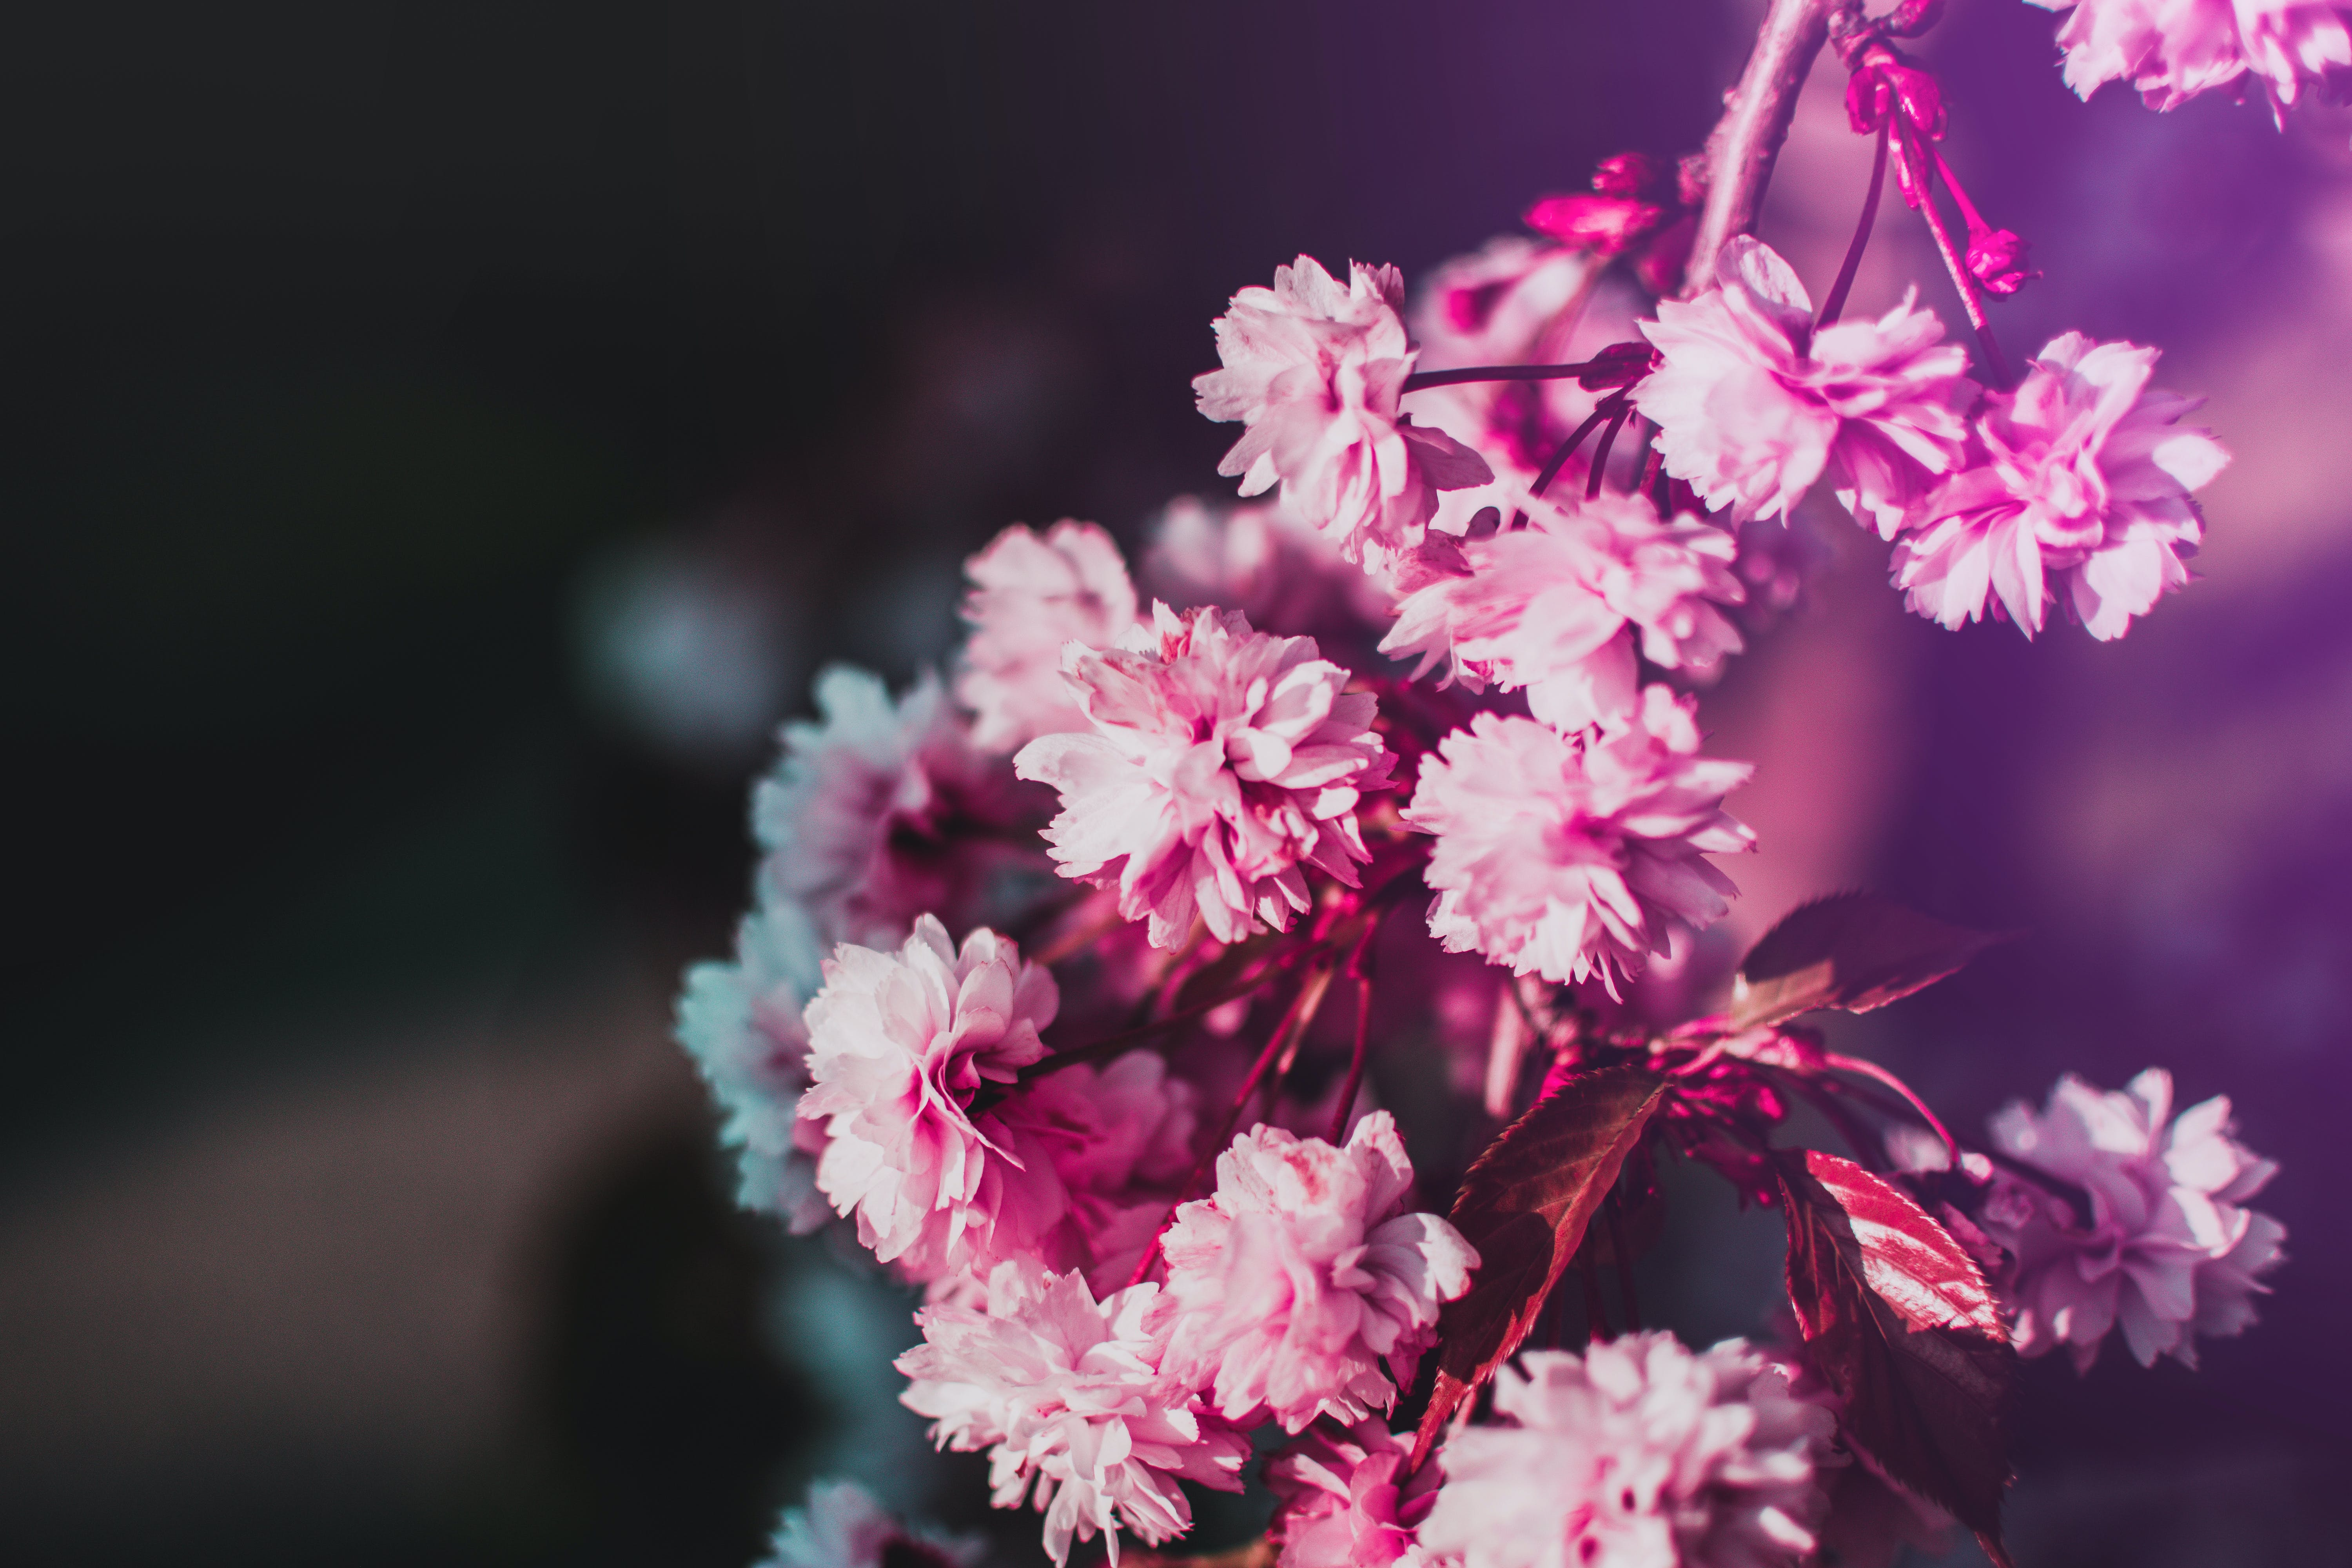 Selective-focus Photography of Pink Flowers